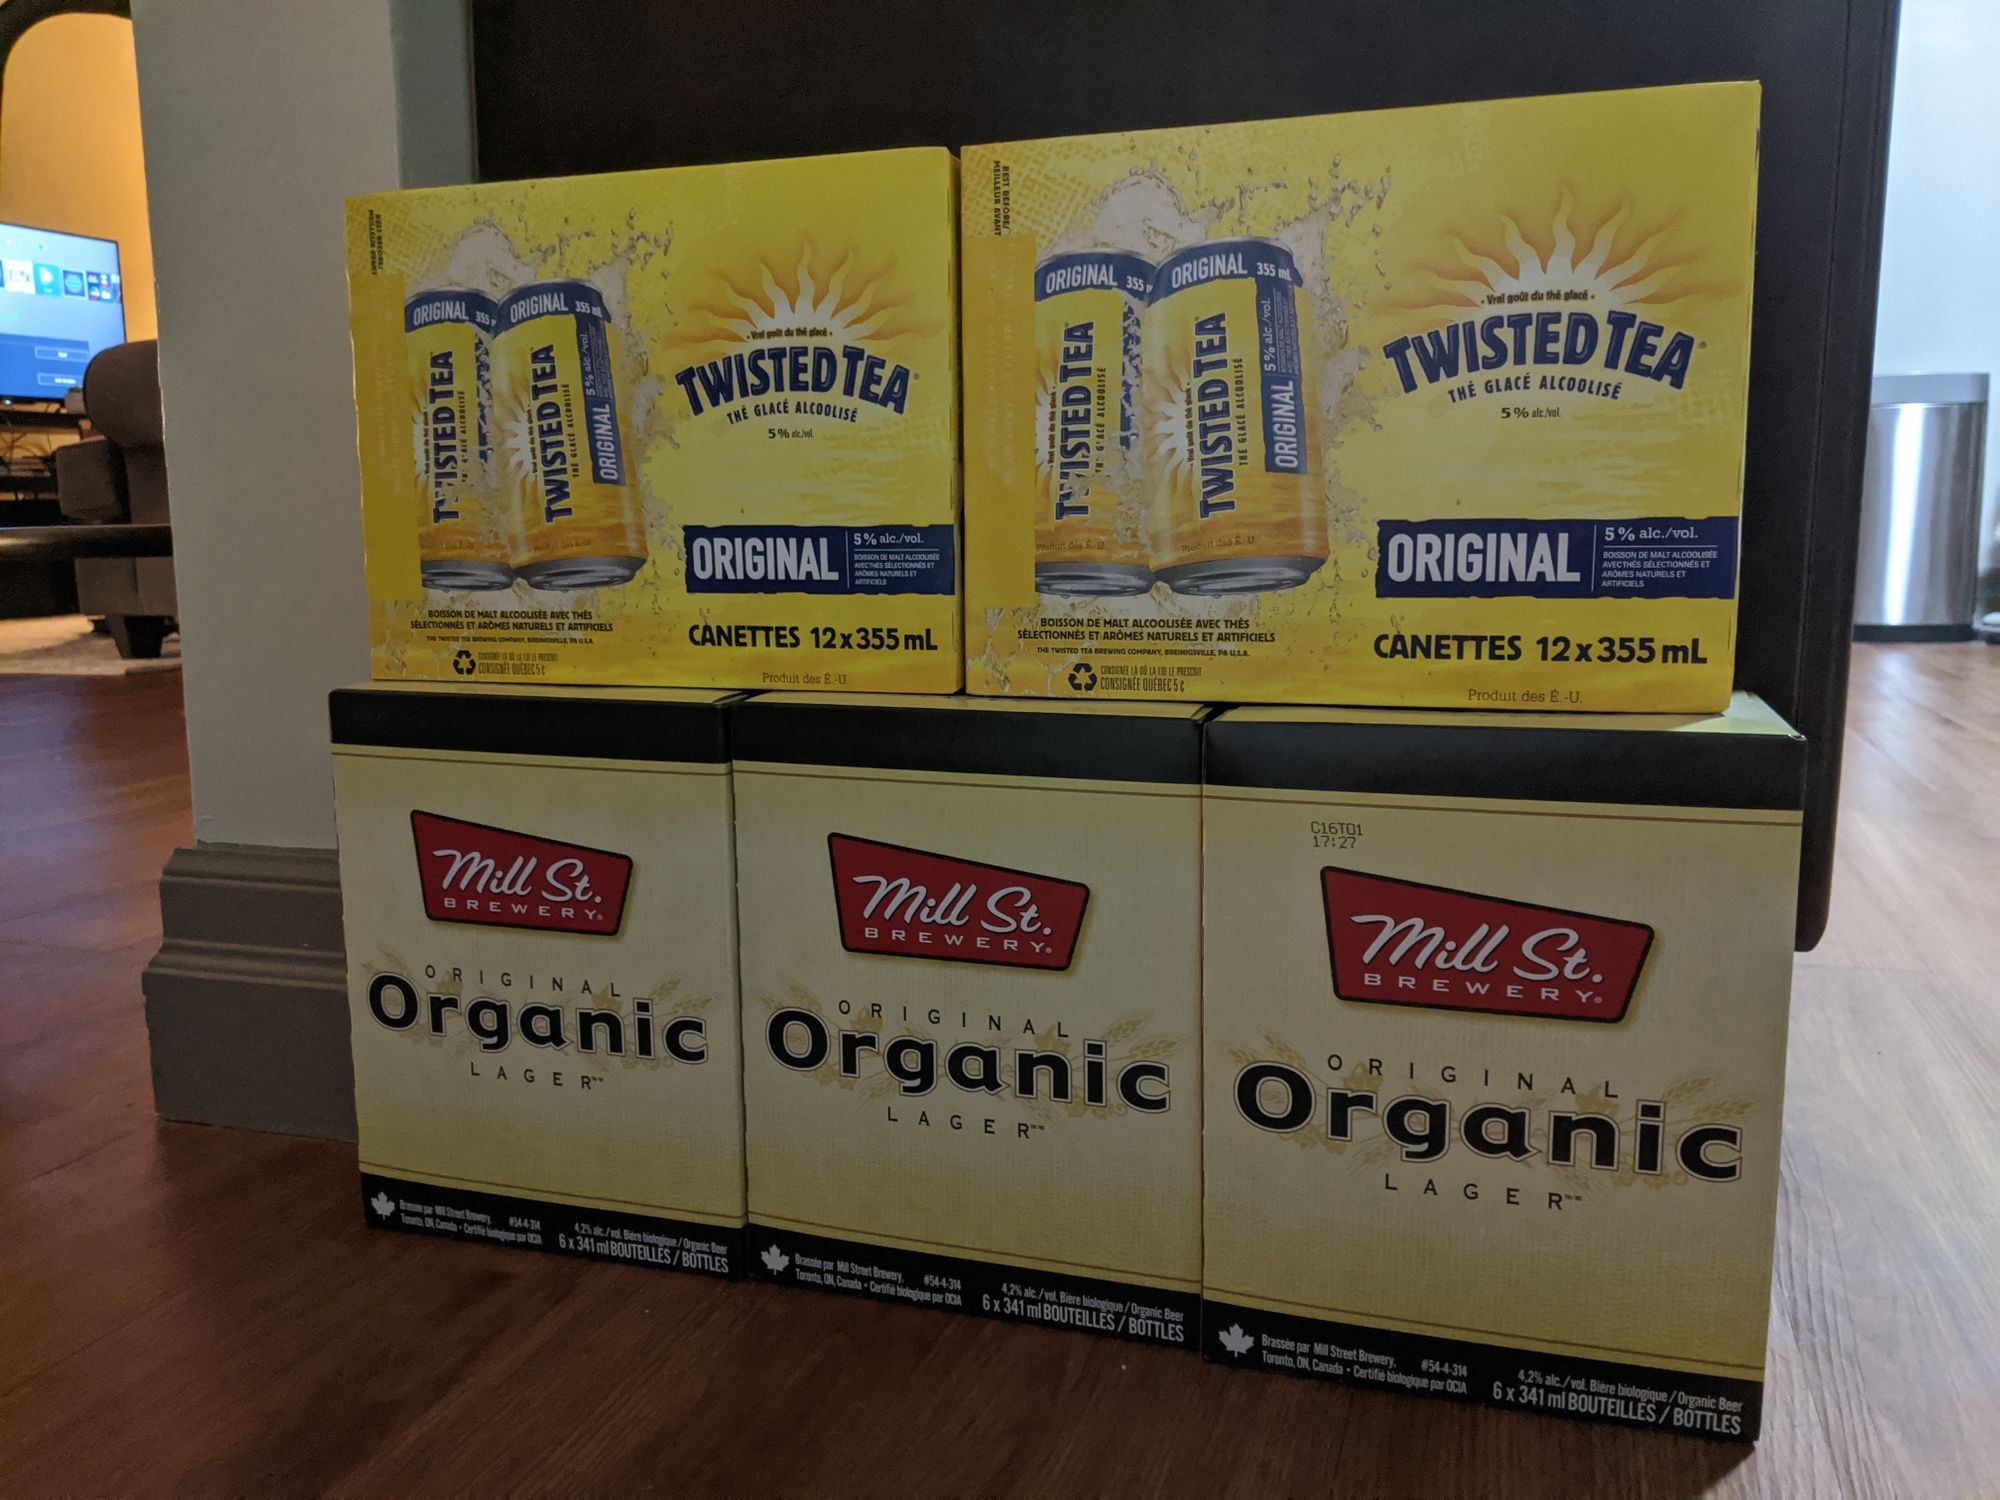 Boxes of alcohol on the floor. Twisted Teas stacked on top of multiple boxes of Mill St. Organic beer